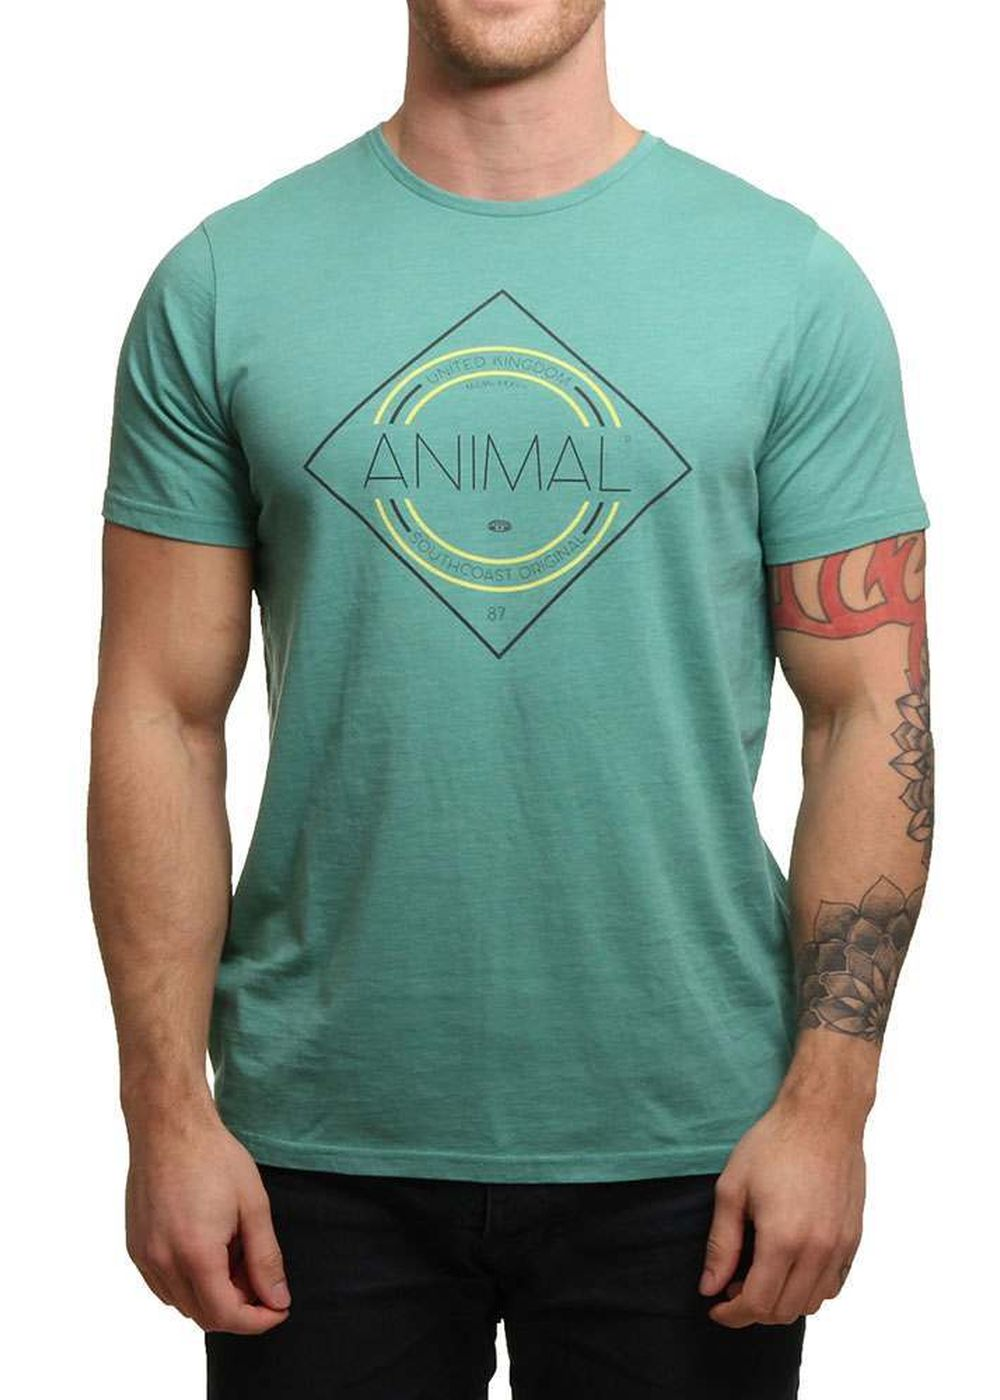 animal-analogue-tee-beryl-green-marl